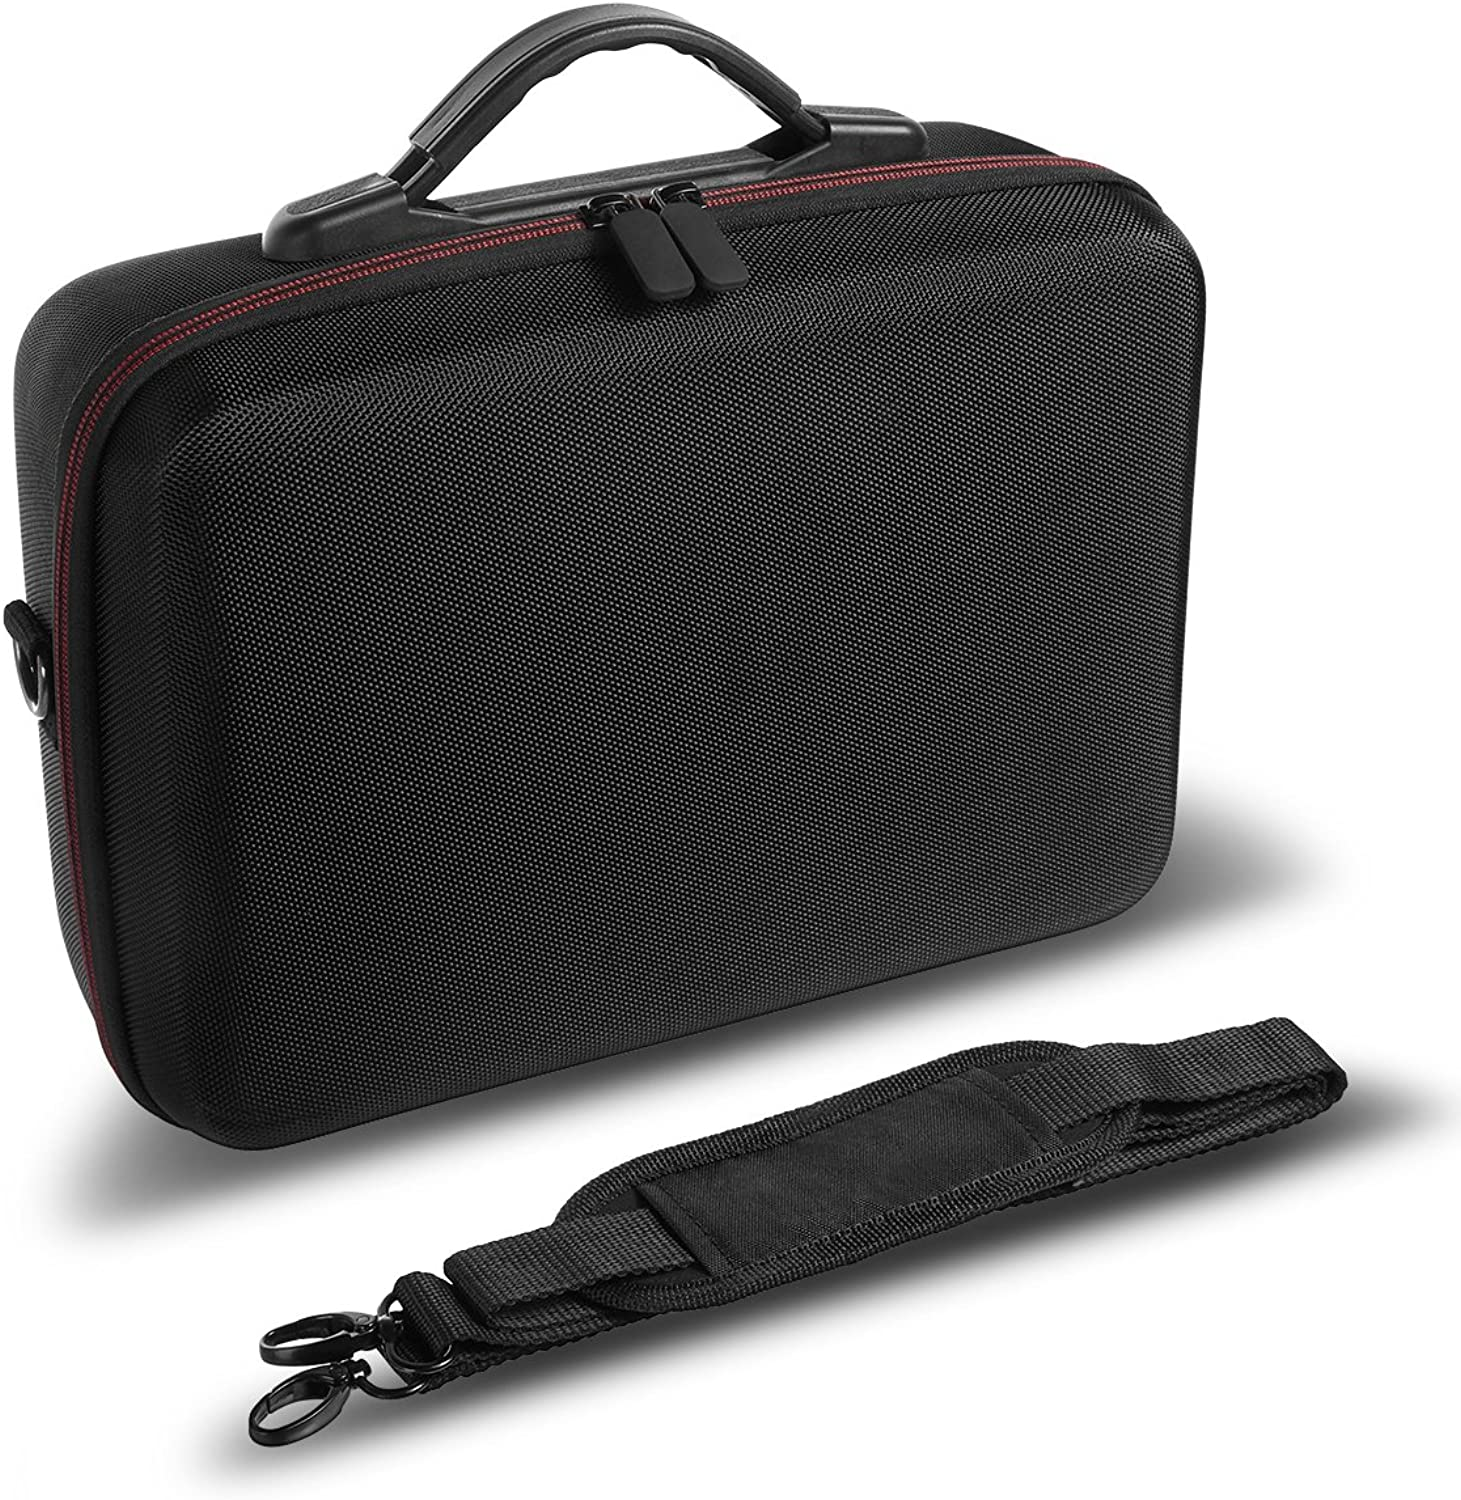 Powerextra Waterproof Carrying Case Portable Bag DJI Tello Drone Accessories